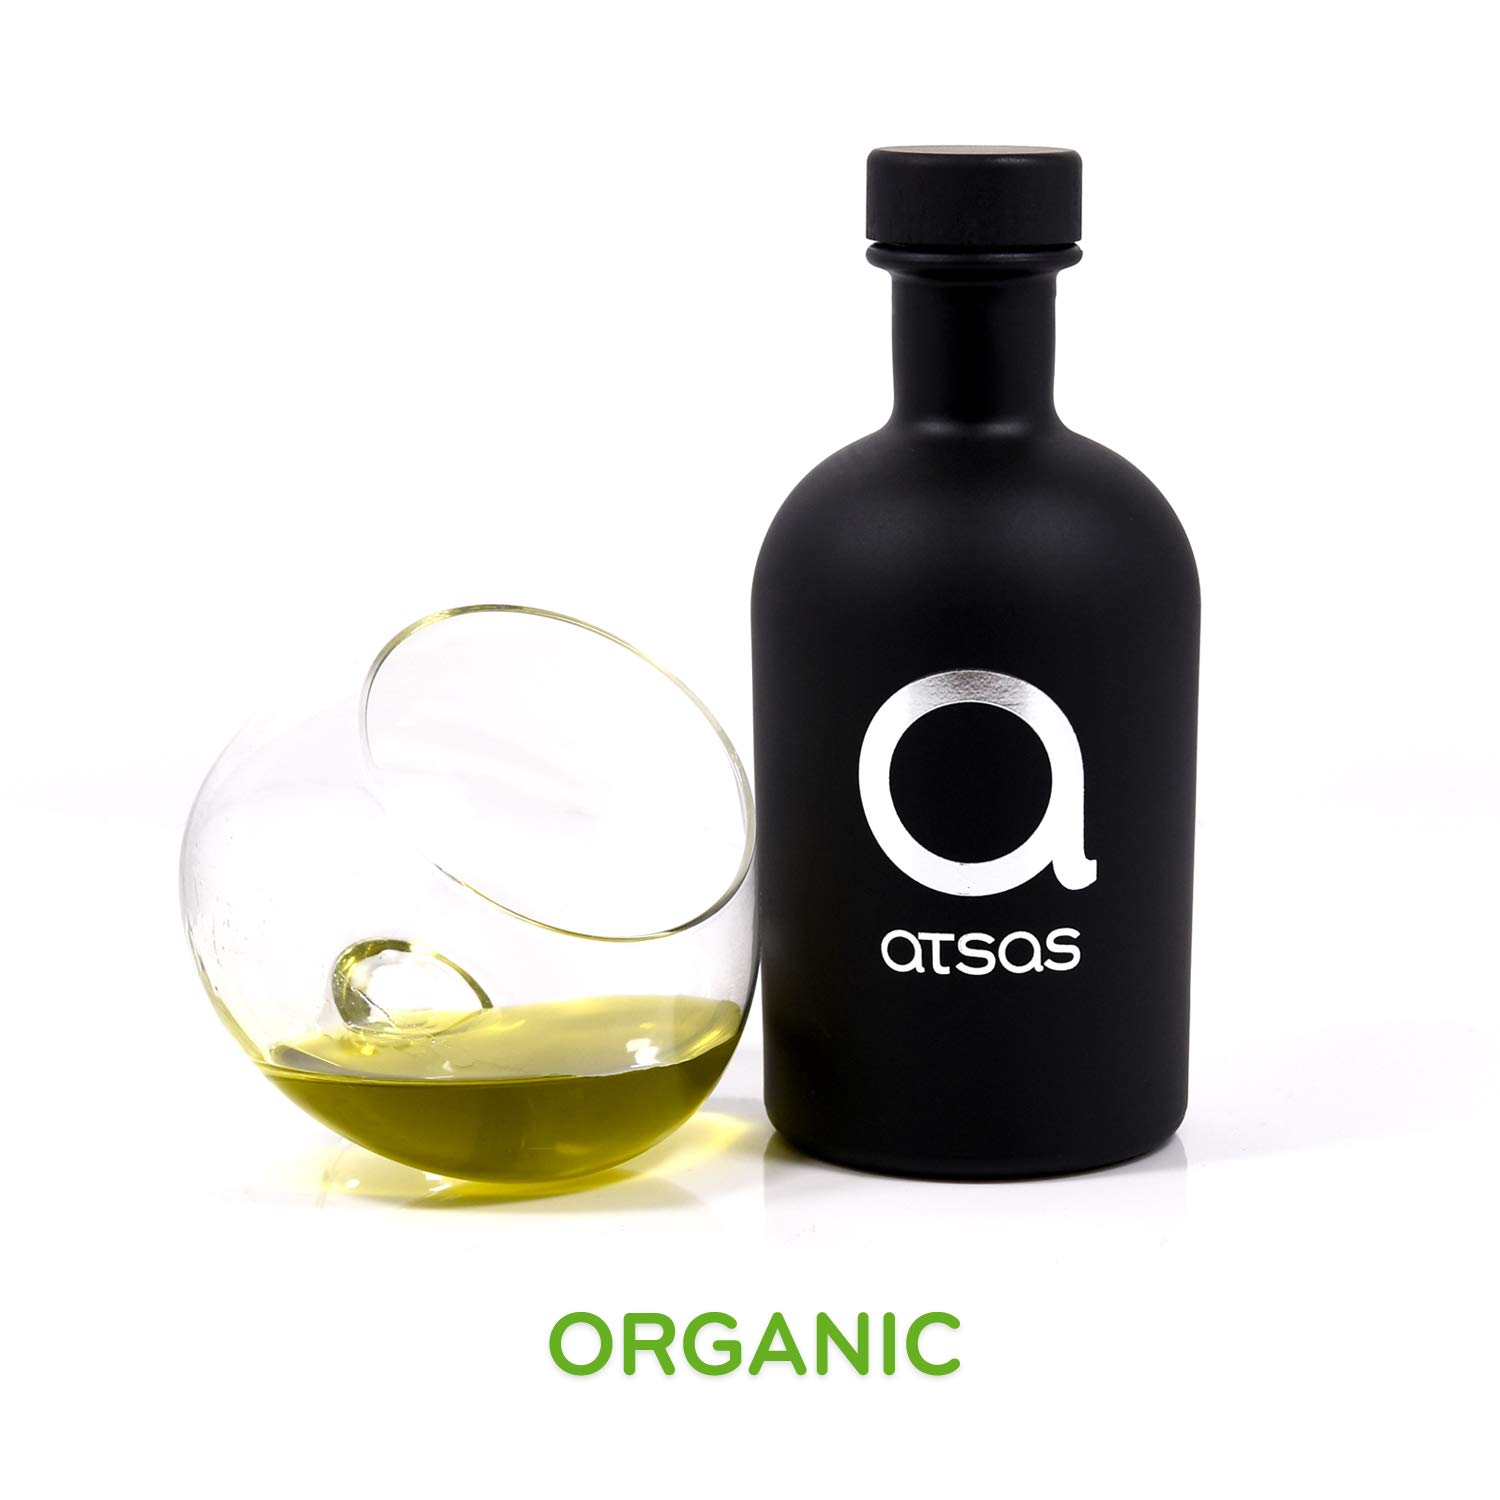 Pure Organic Extra Virgin Olive Oil with High Phenolic Content | Rich in Health-Boosting Phenols and Organic Oleocanthal Compound | Premium Product of Cyprus (Atsas Organic 250ml) by Atsas